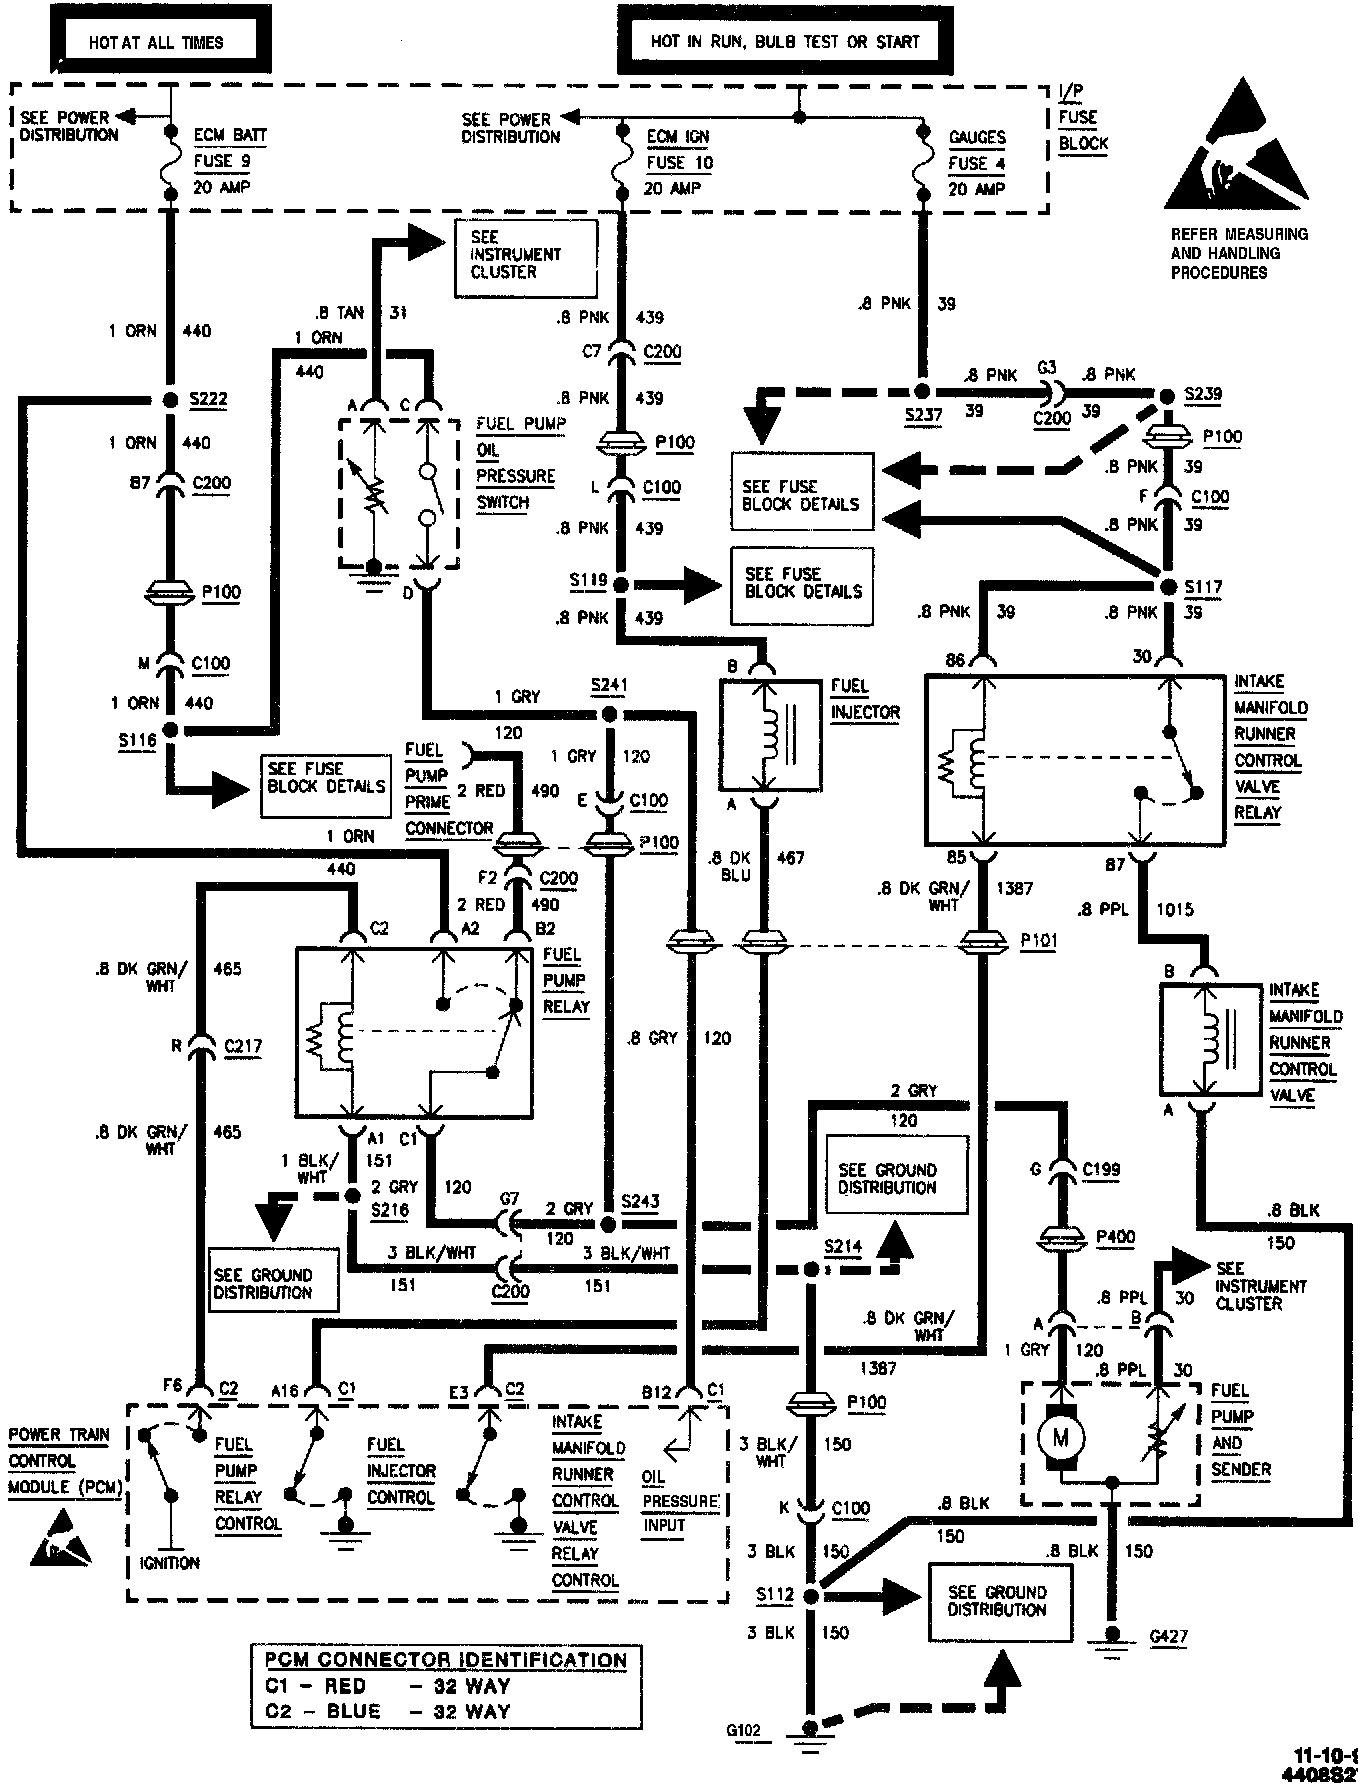 chevy s10 wiring harness diagram wiring diagram H3 Hummer Air Suspension 97 chevy wiring harness wiring diagram97 chevy wiring harness wiring diagram97 chevy s10 wiring diagram wiring